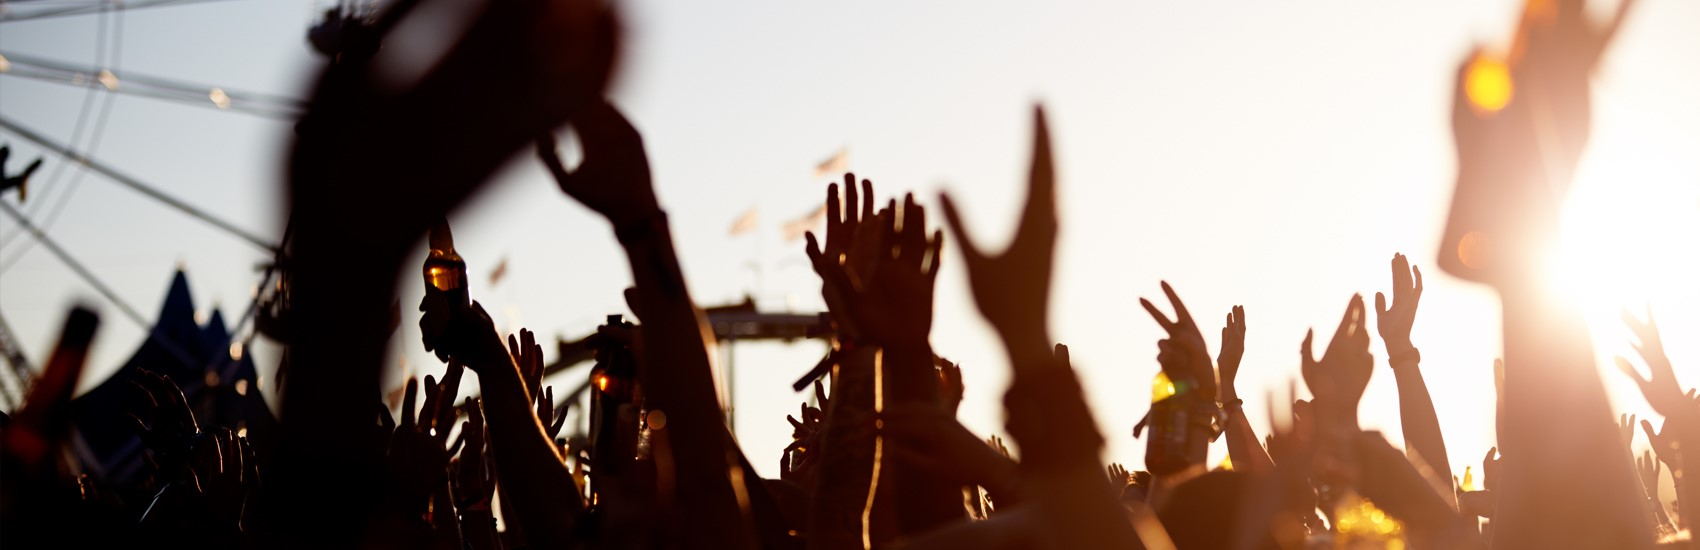 How_Mobile_Payments_Can_be_a_Boon_for_Festival_Goers_and_All_Businesses